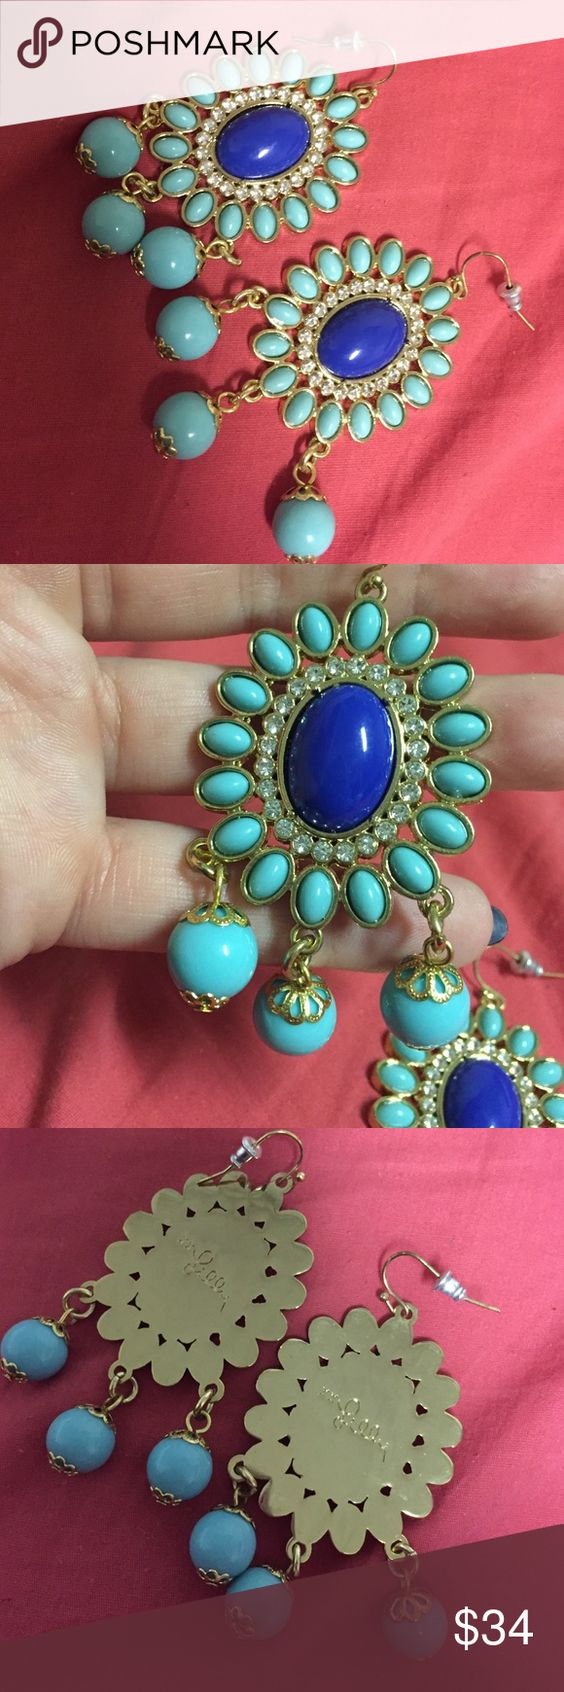 Lilly Pulitzer Earrings!!!! Adorable Teal And Aqua Blue Dangle Earrings  Worn